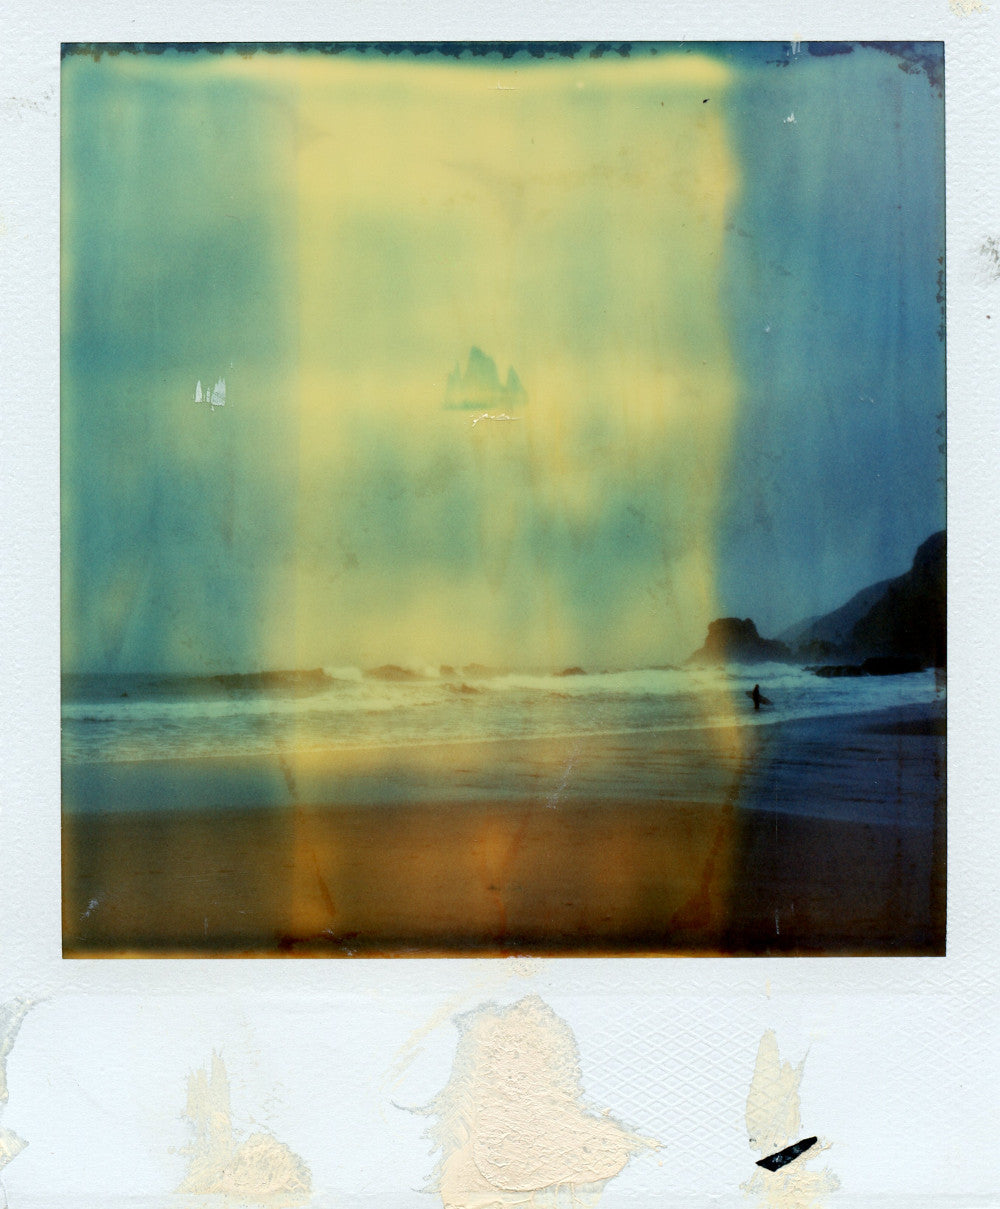 Polaroid of a surfer on a stormy day at St AGnes